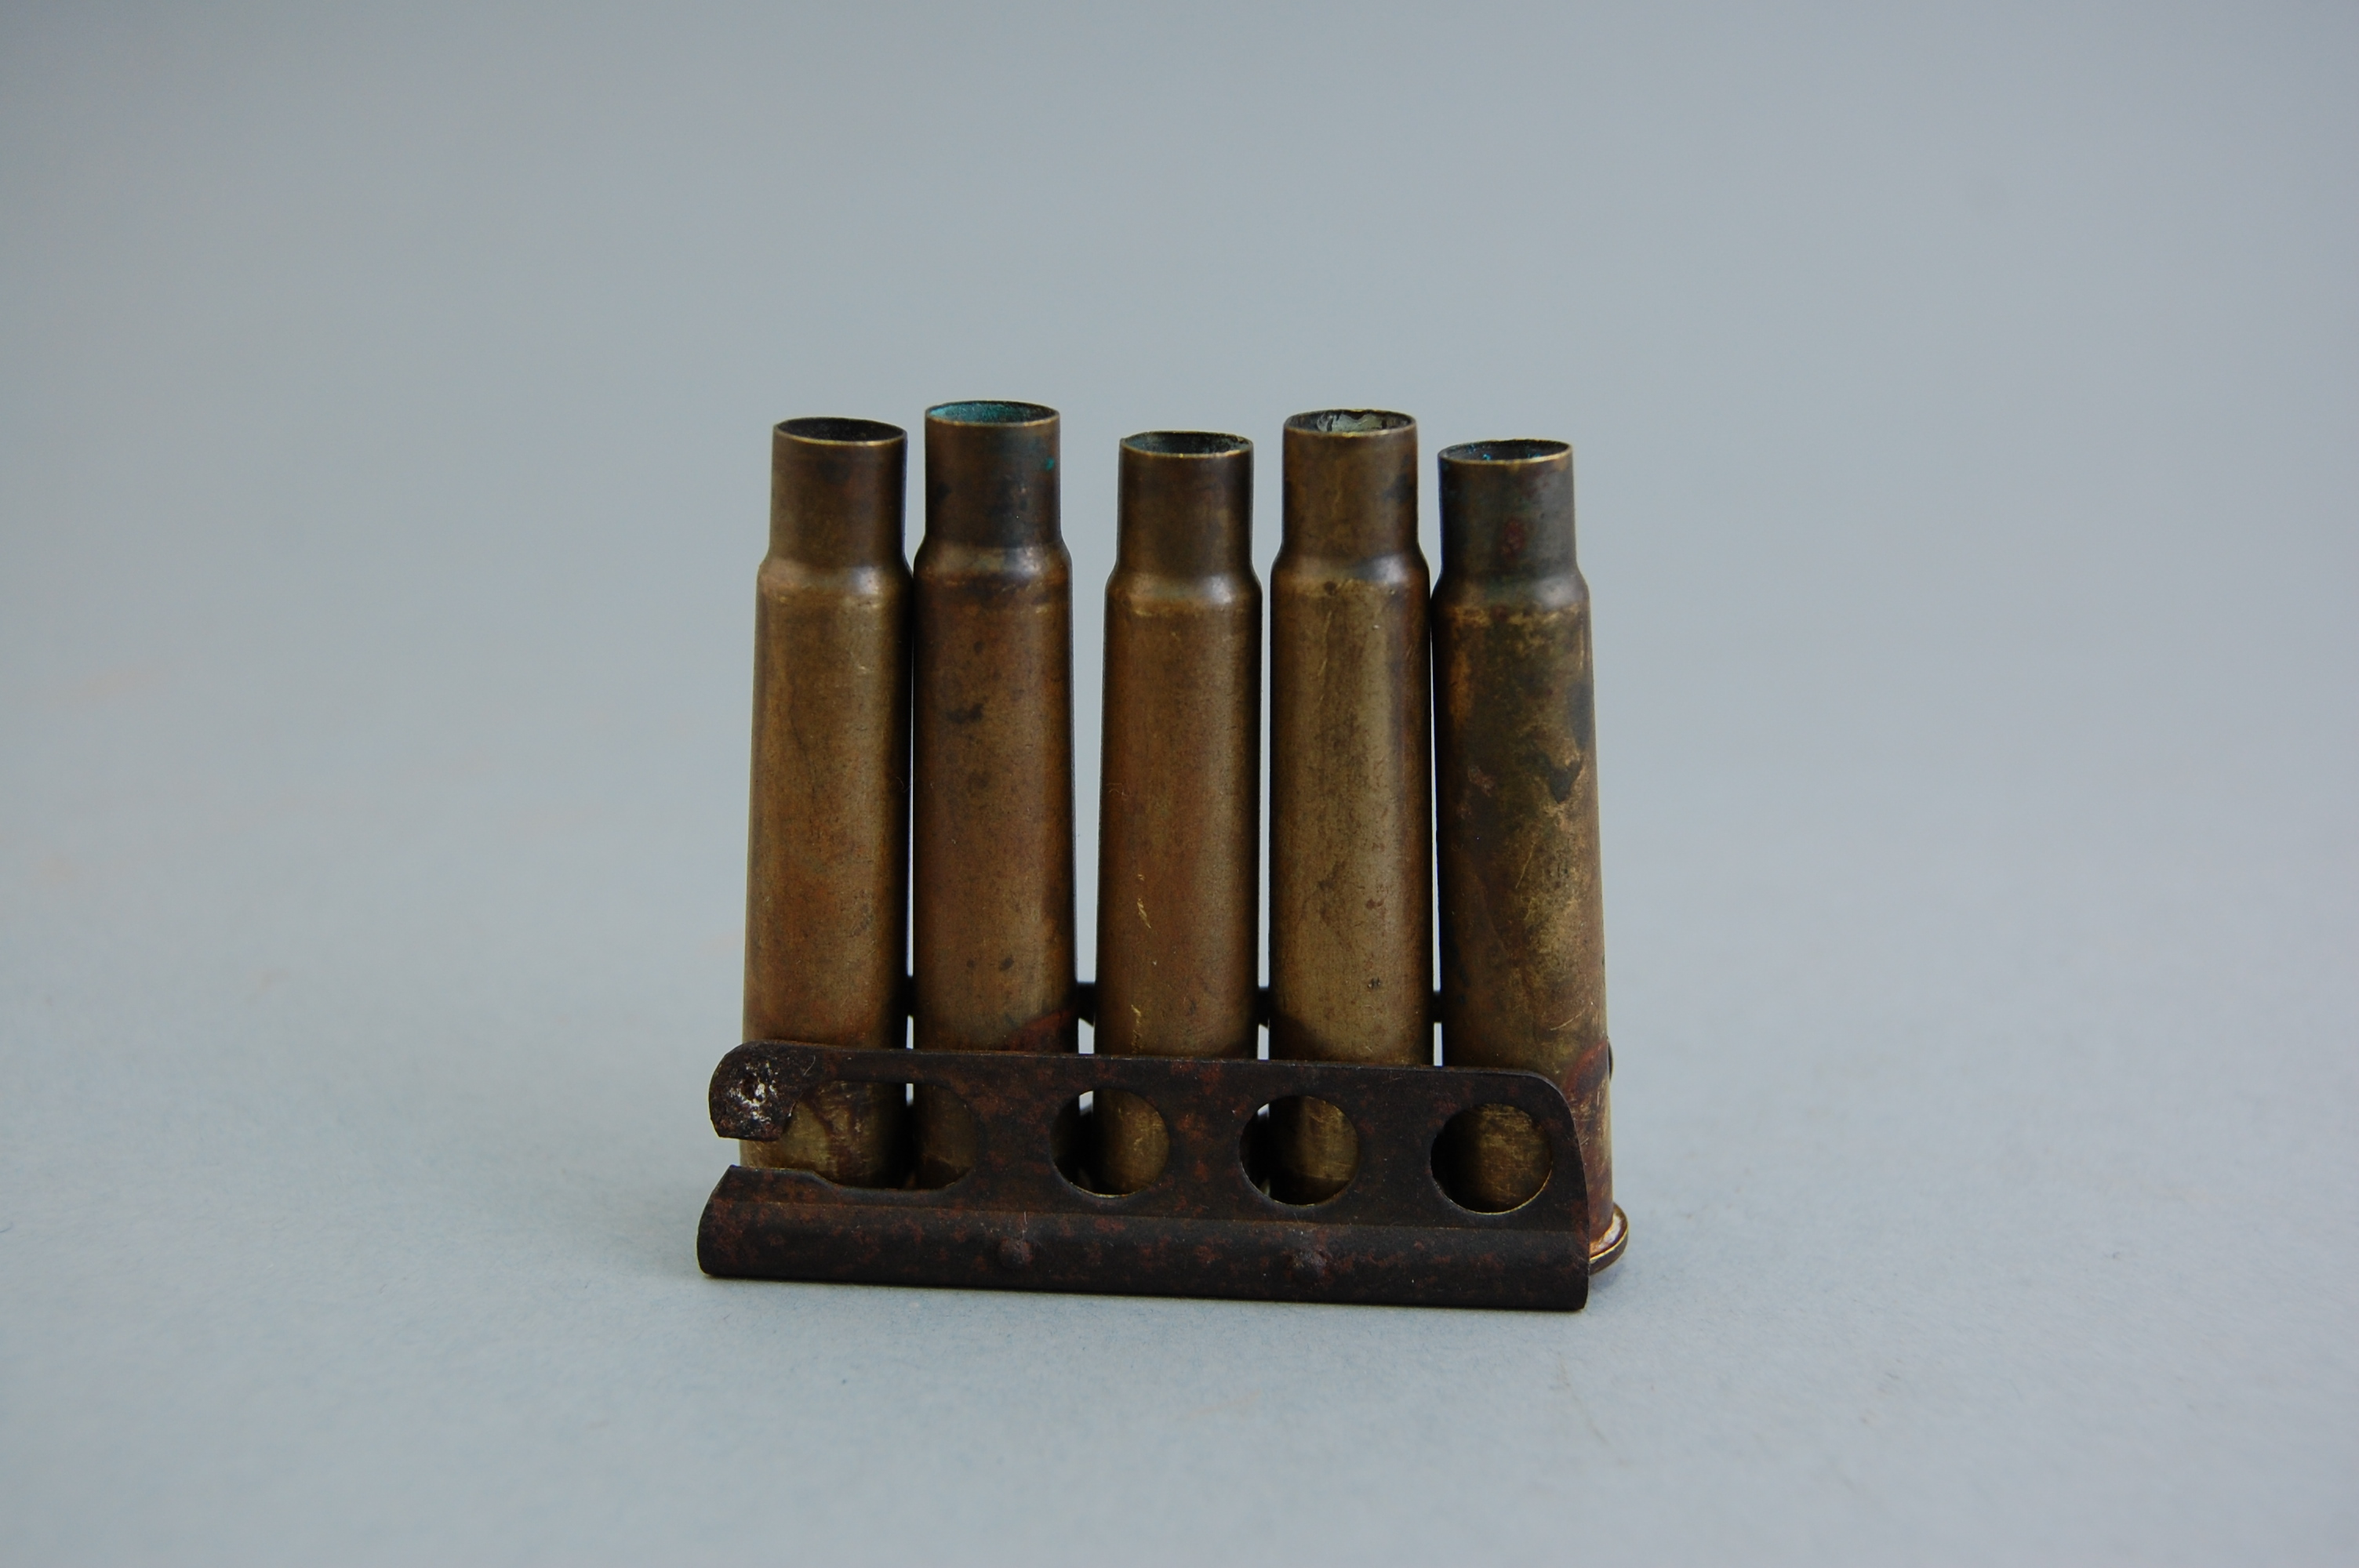 This is for the Lee Enfield rifle used by the British army, and was used to ensure rapid reloading.